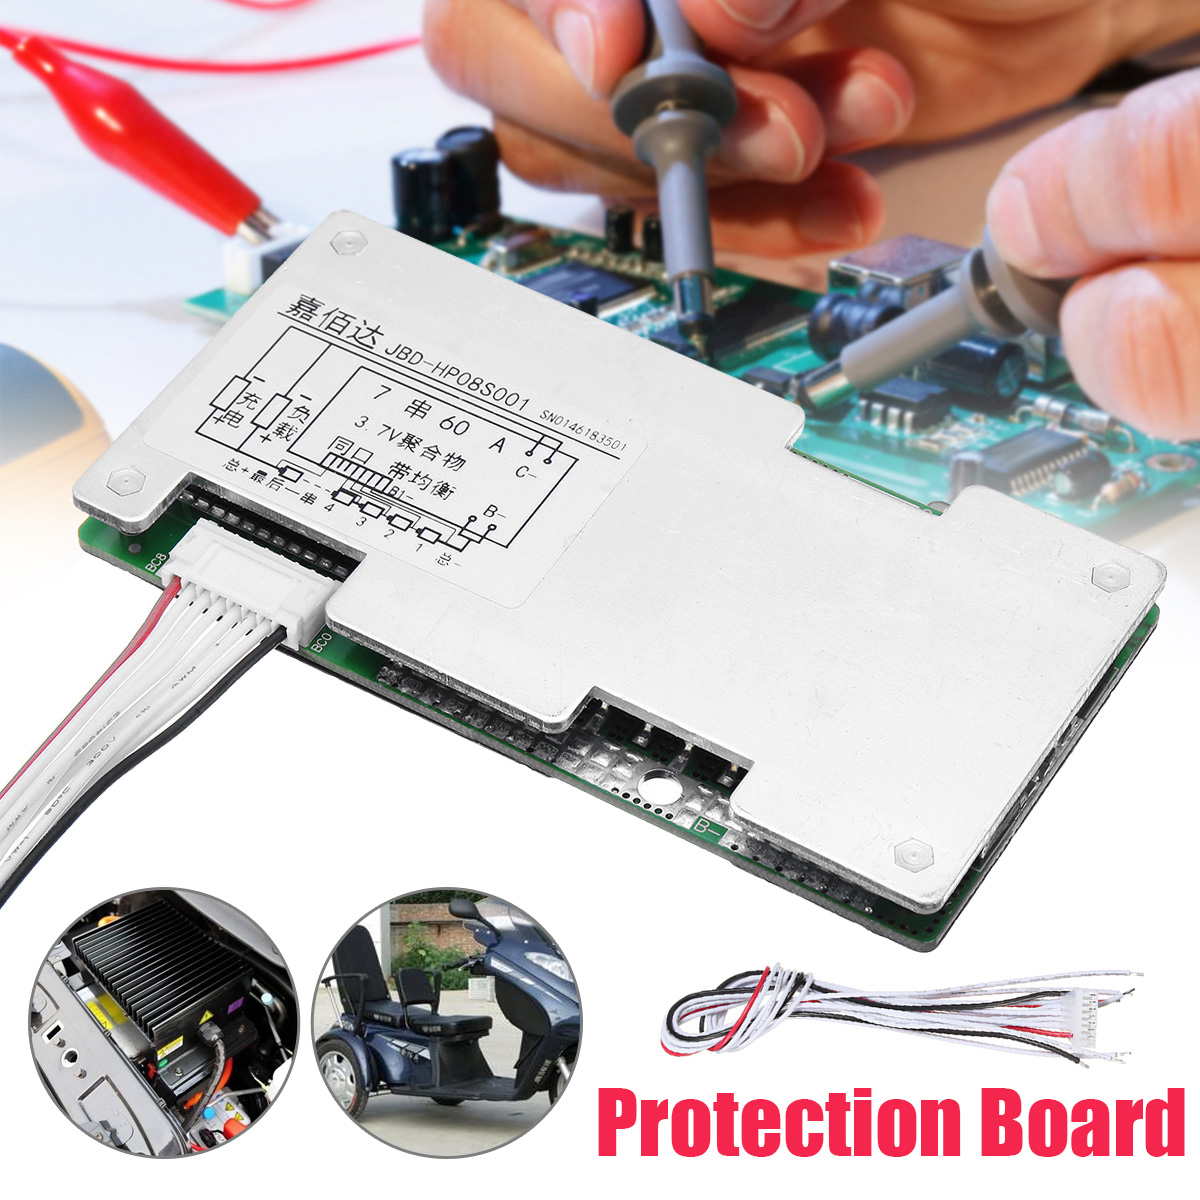 1PC New Arrival 7s 24v Li-ion Lithium Cell 60A 18650 Battery Protection Board with Balance 110x55x9mm1PC New Arrival 7s 24v Li-ion Lithium Cell 60A 18650 Battery Protection Board with Balance 110x55x9mm